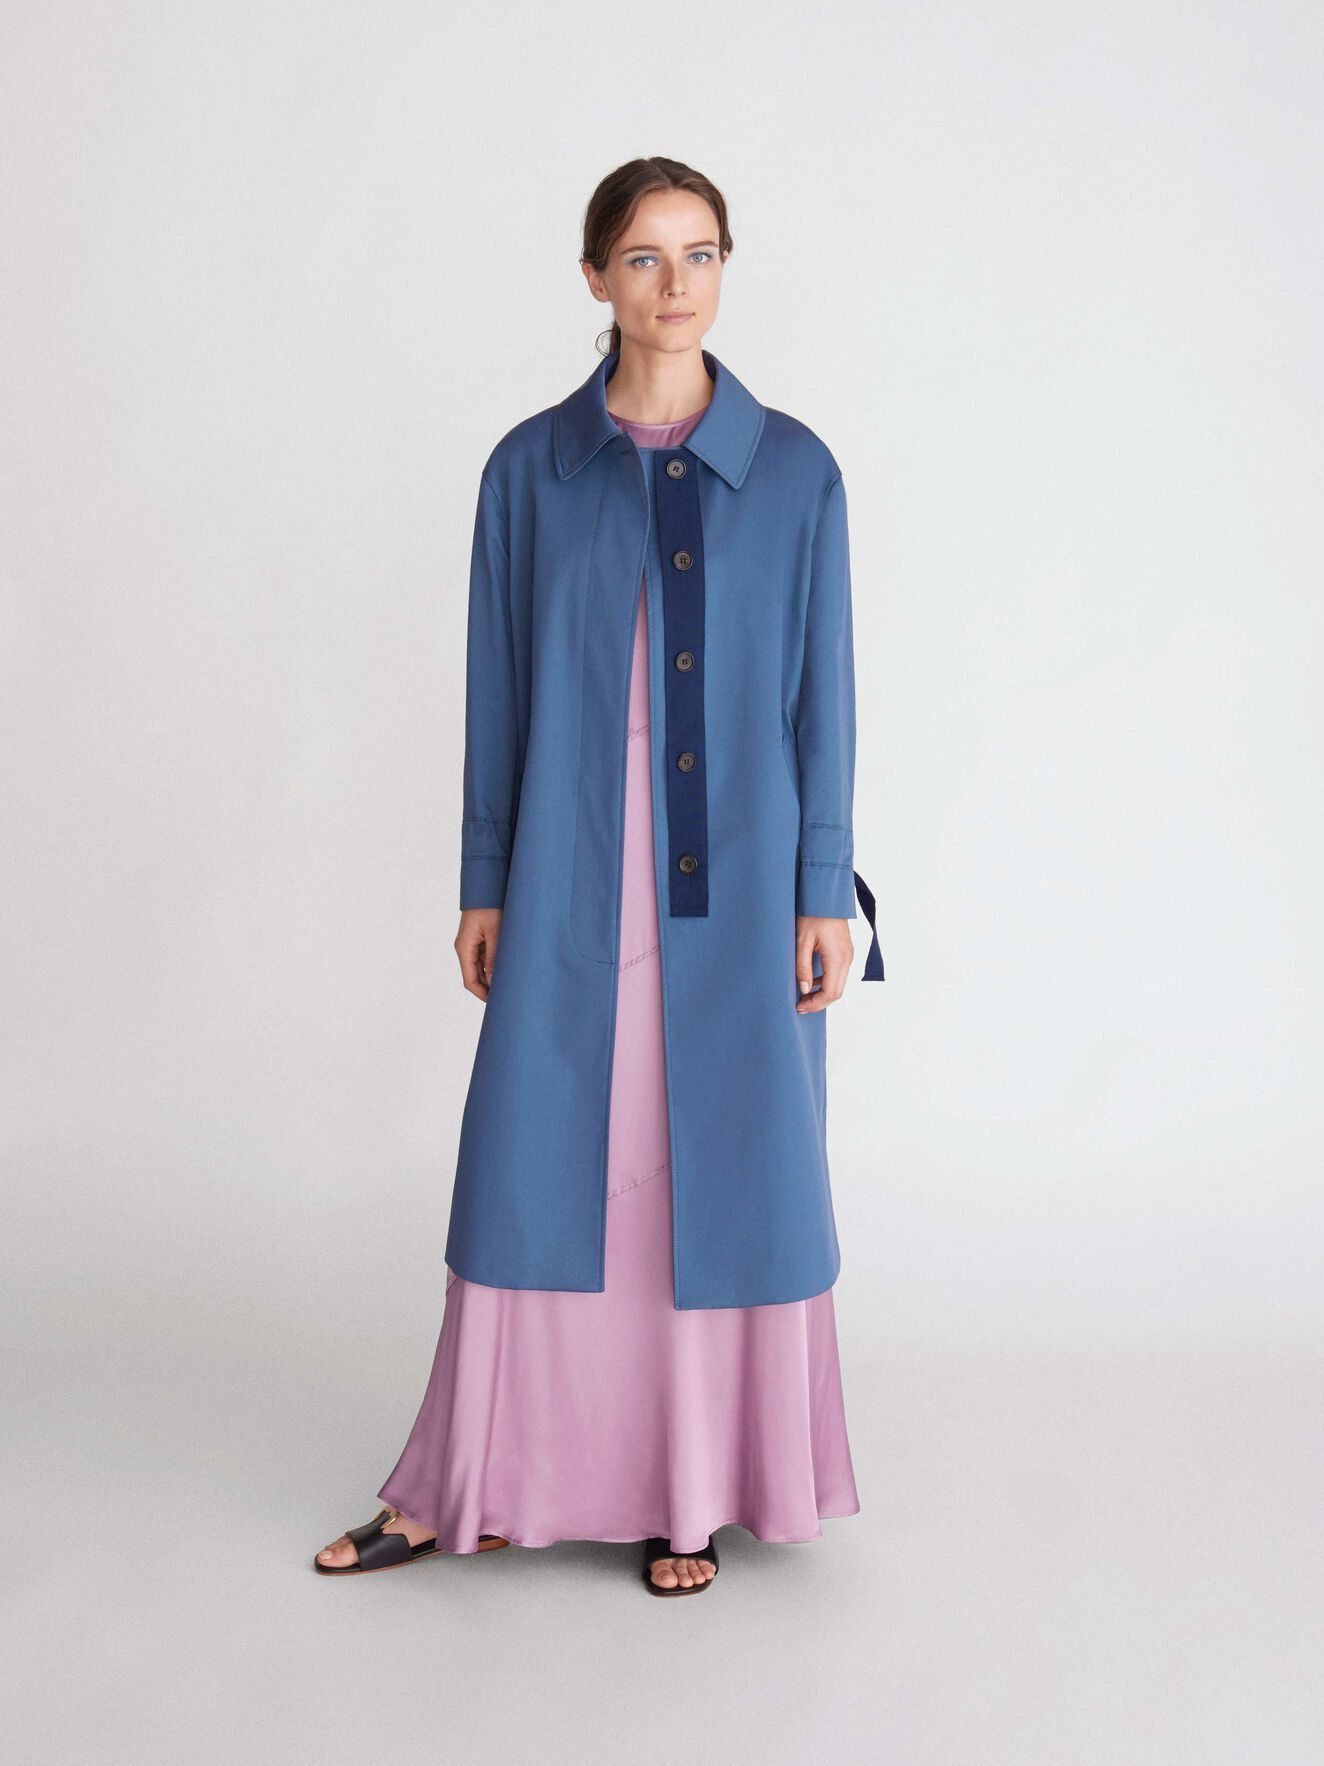 Agit Coat in Soft blue from Tiger of Sweden